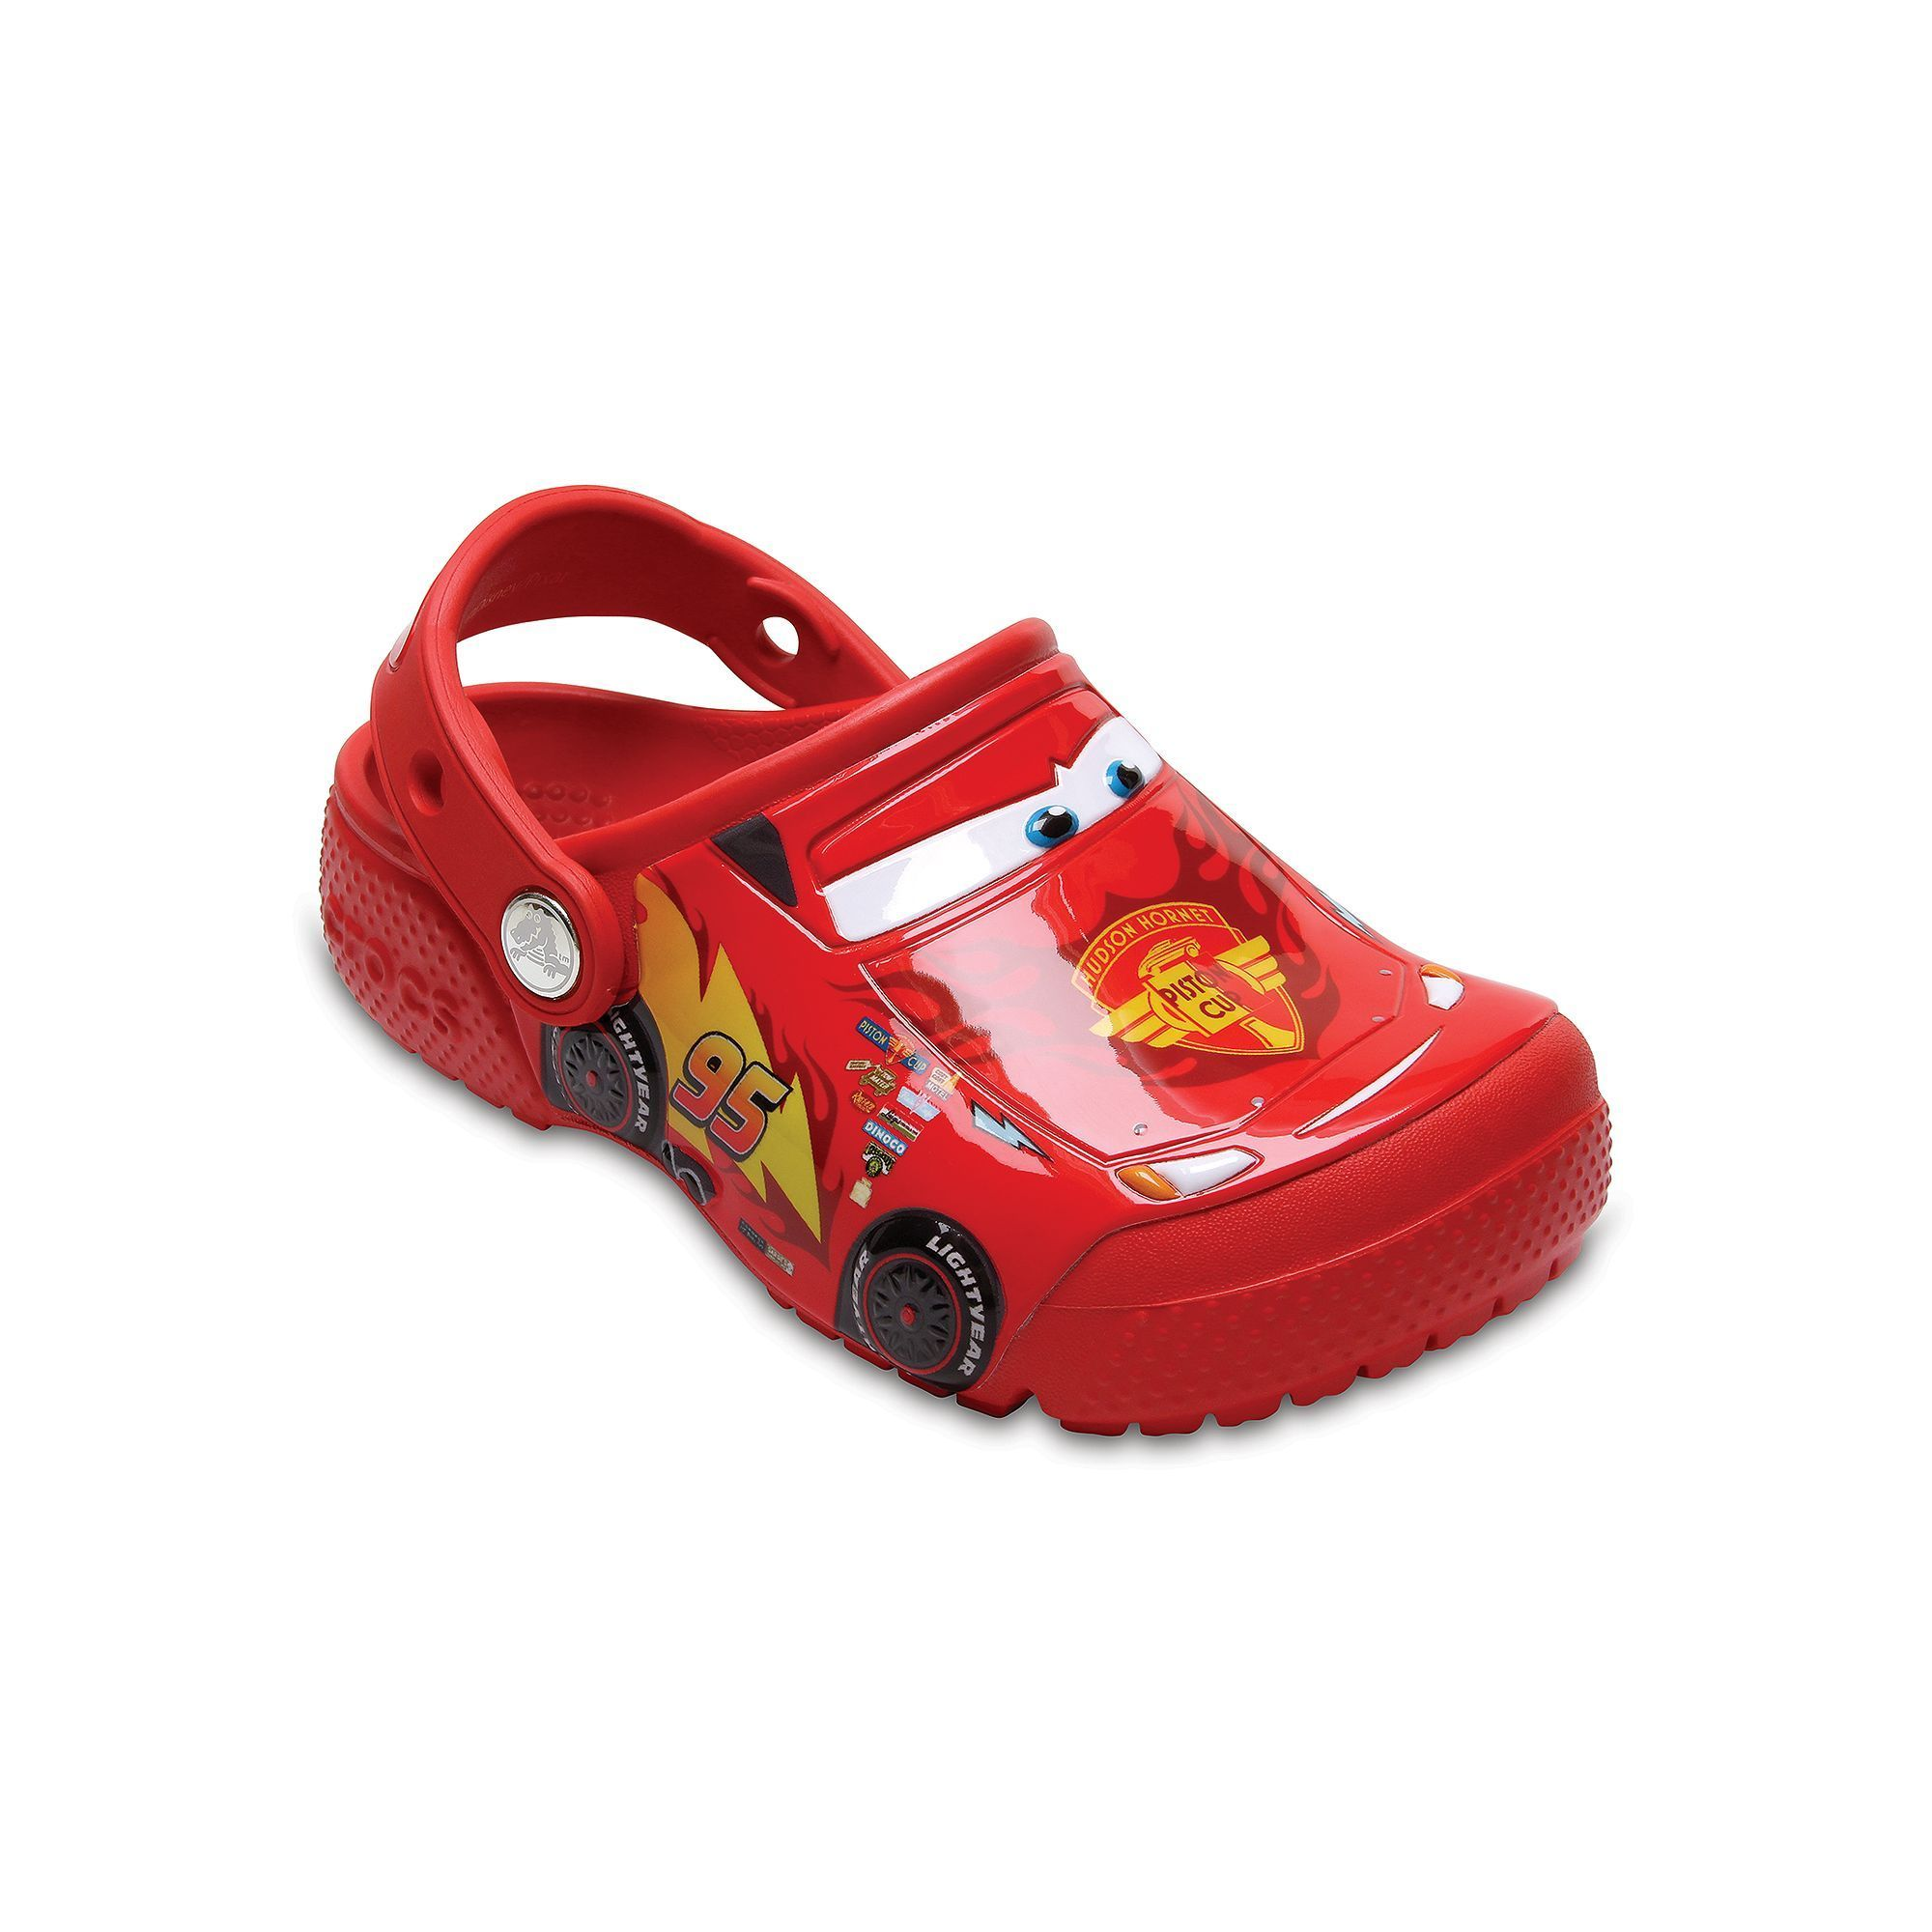 5852f53bd Crocs Disney / Pixar Cars Lightning McQueen Kids Clogs, Size: 10 T, Orange